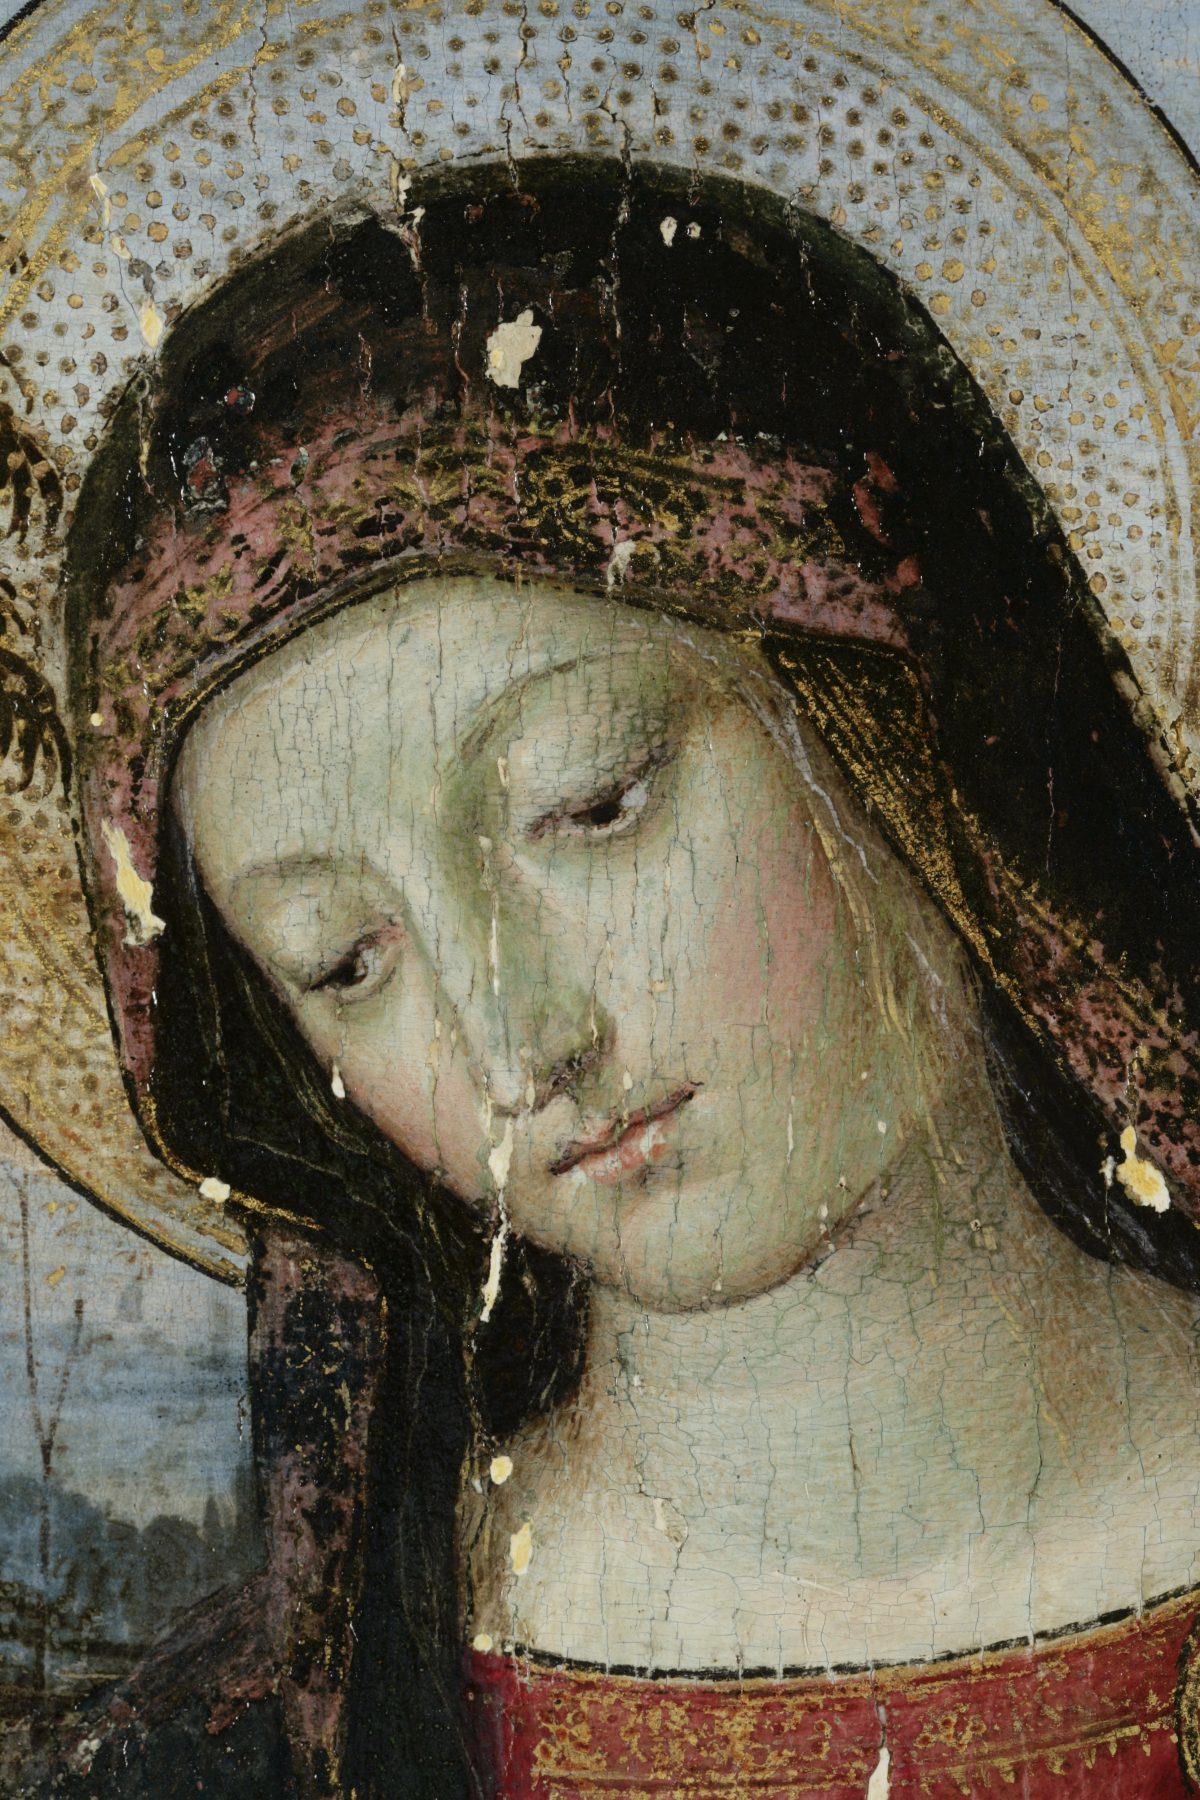 Tickled Pink: Unexpected Discoveries in the Painting Technique and Treatment History of Pinturicchio's Virgin and Child